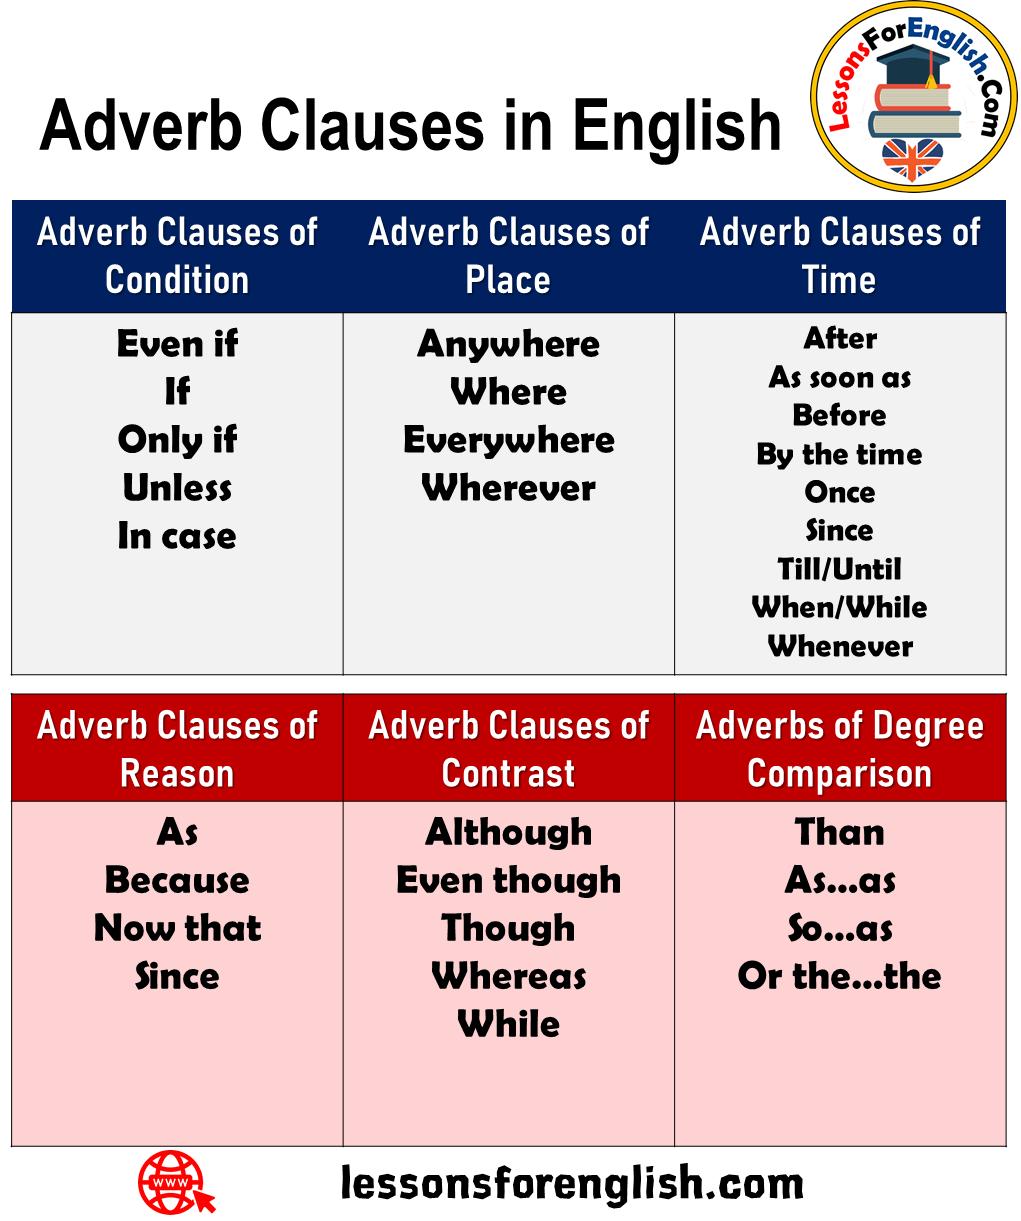 Adverb Clauses in English   Lessons For English